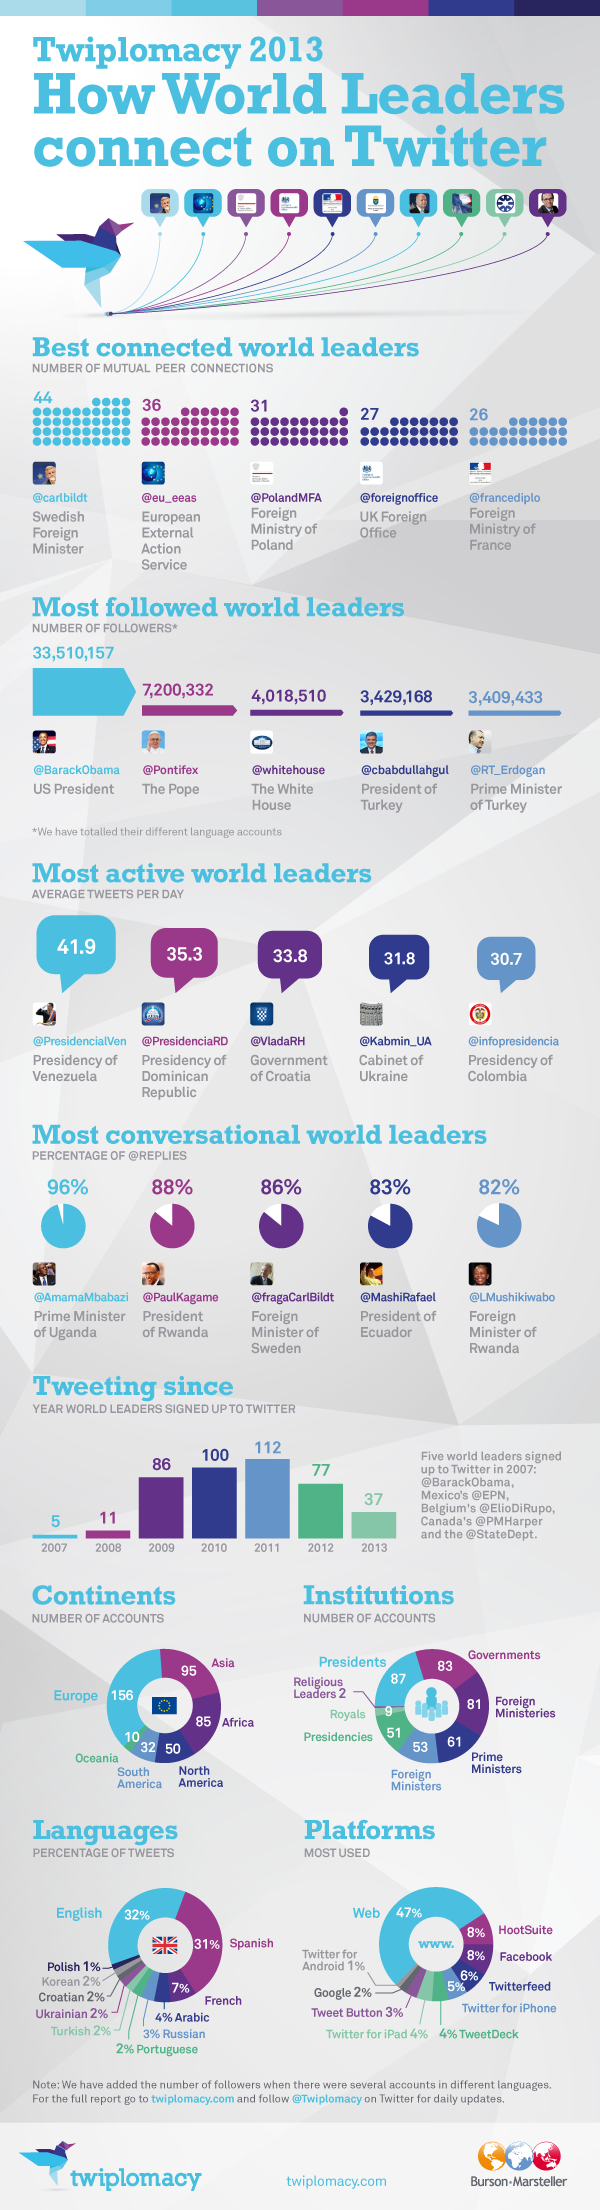 World's best connected leaders on Twitter